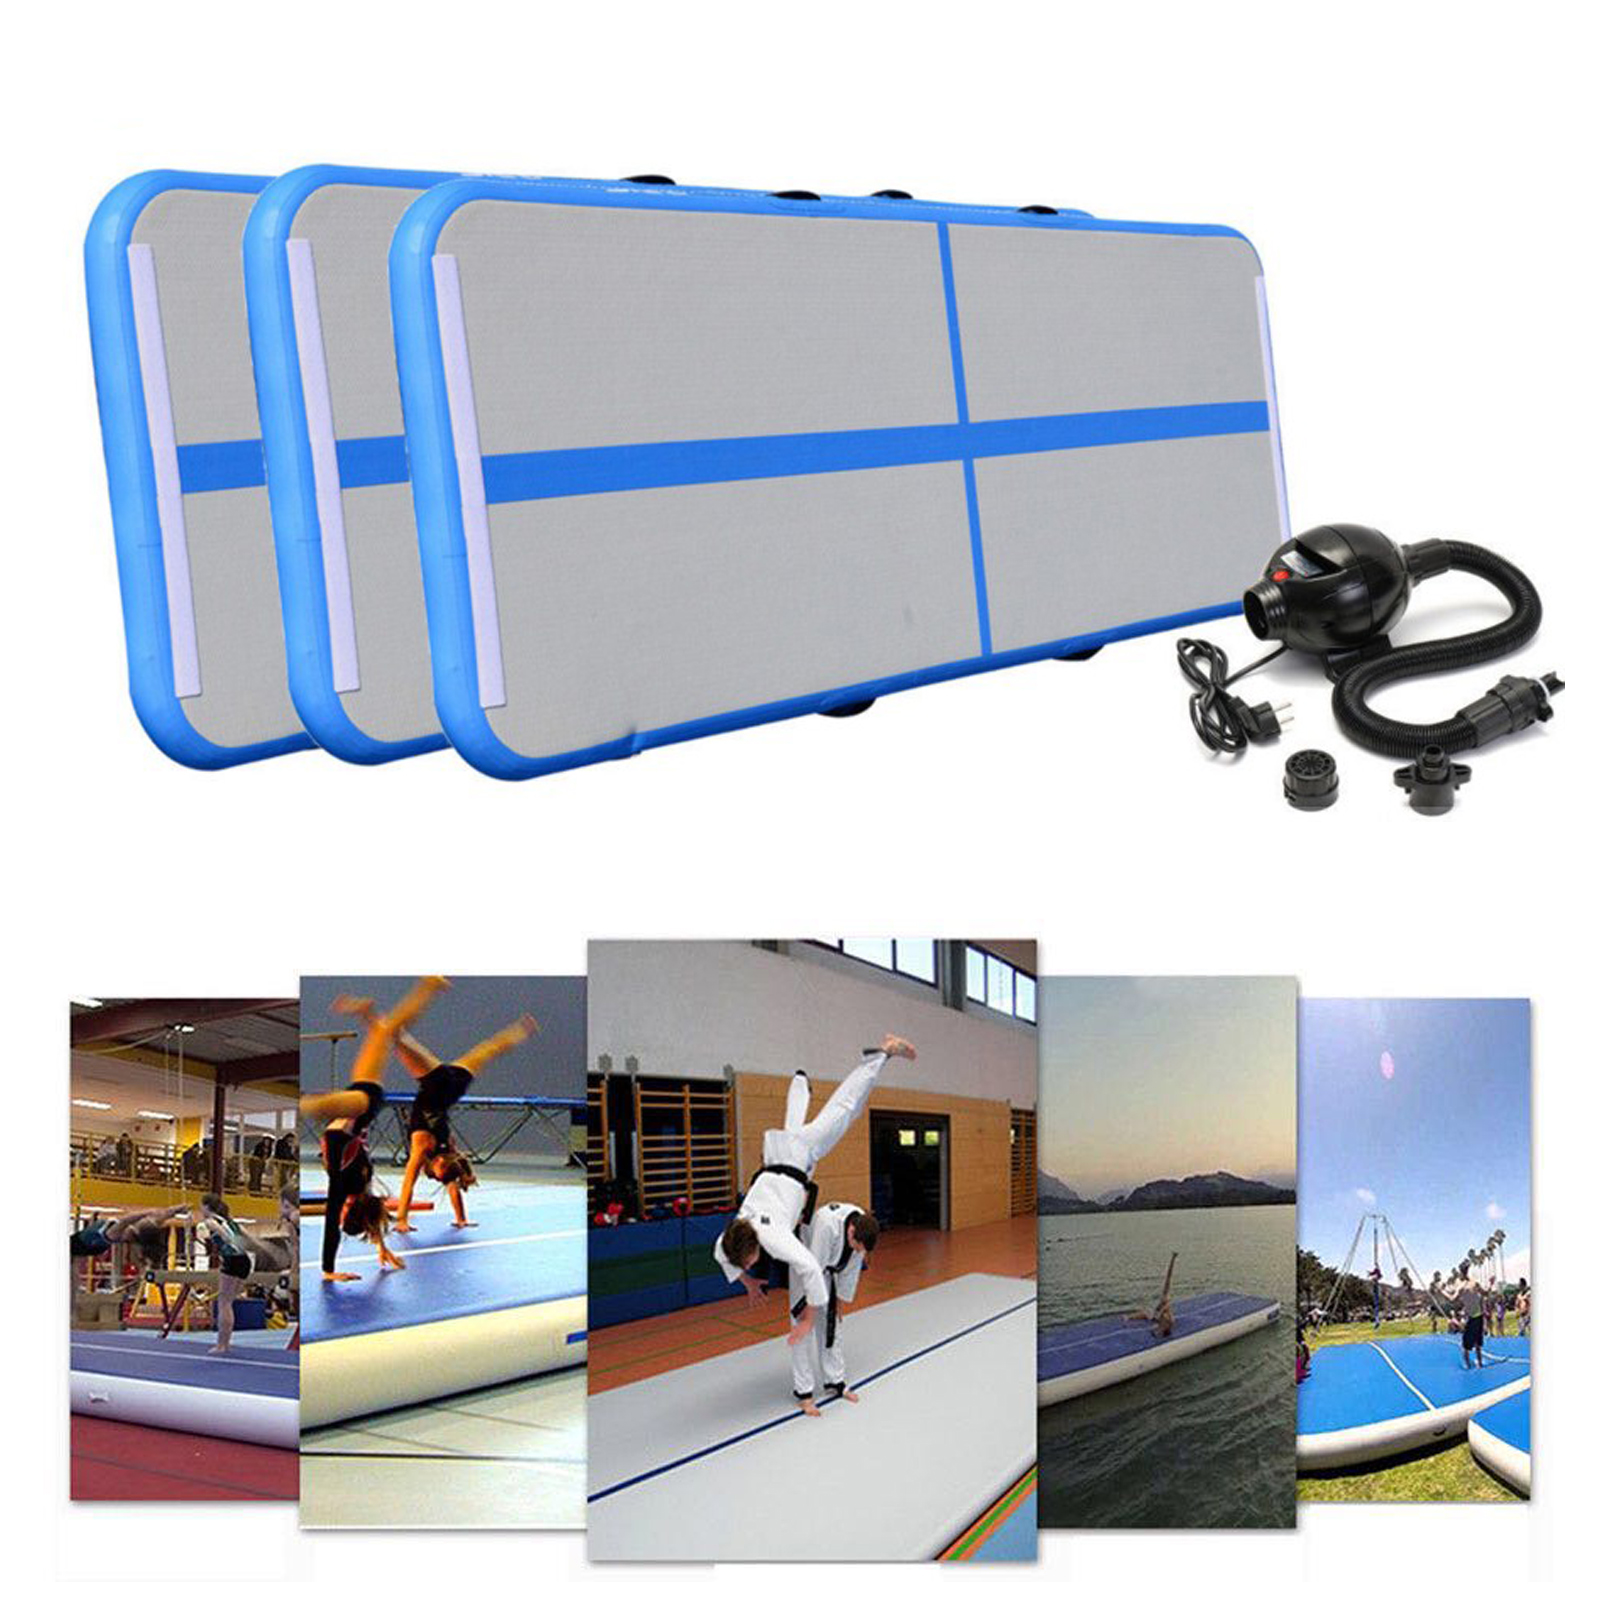 airtrack air track floor inflatable gymnastics tumbling mat gym w pump 699929394101 ebay. Black Bedroom Furniture Sets. Home Design Ideas